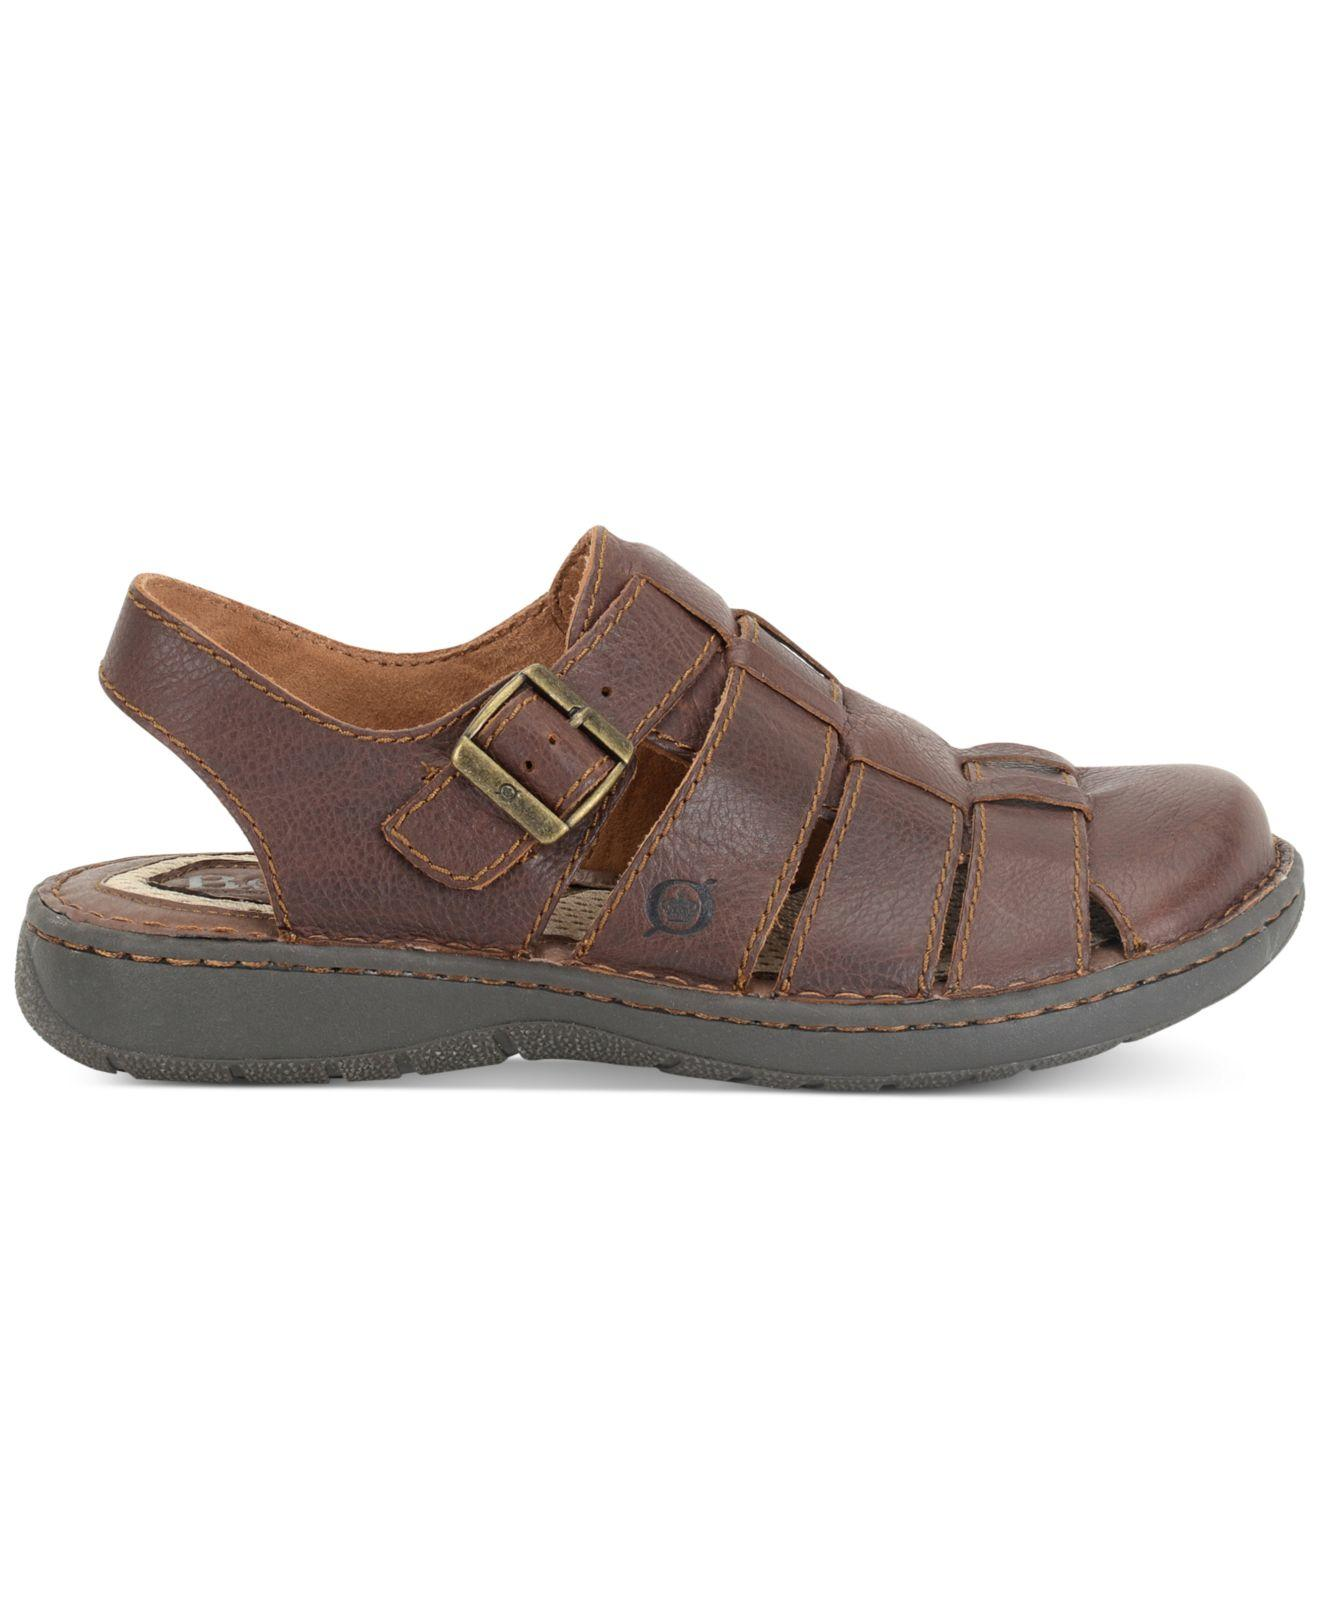 19b099fce Lyst - Born Men s Elbek Sandals in Brown for Men